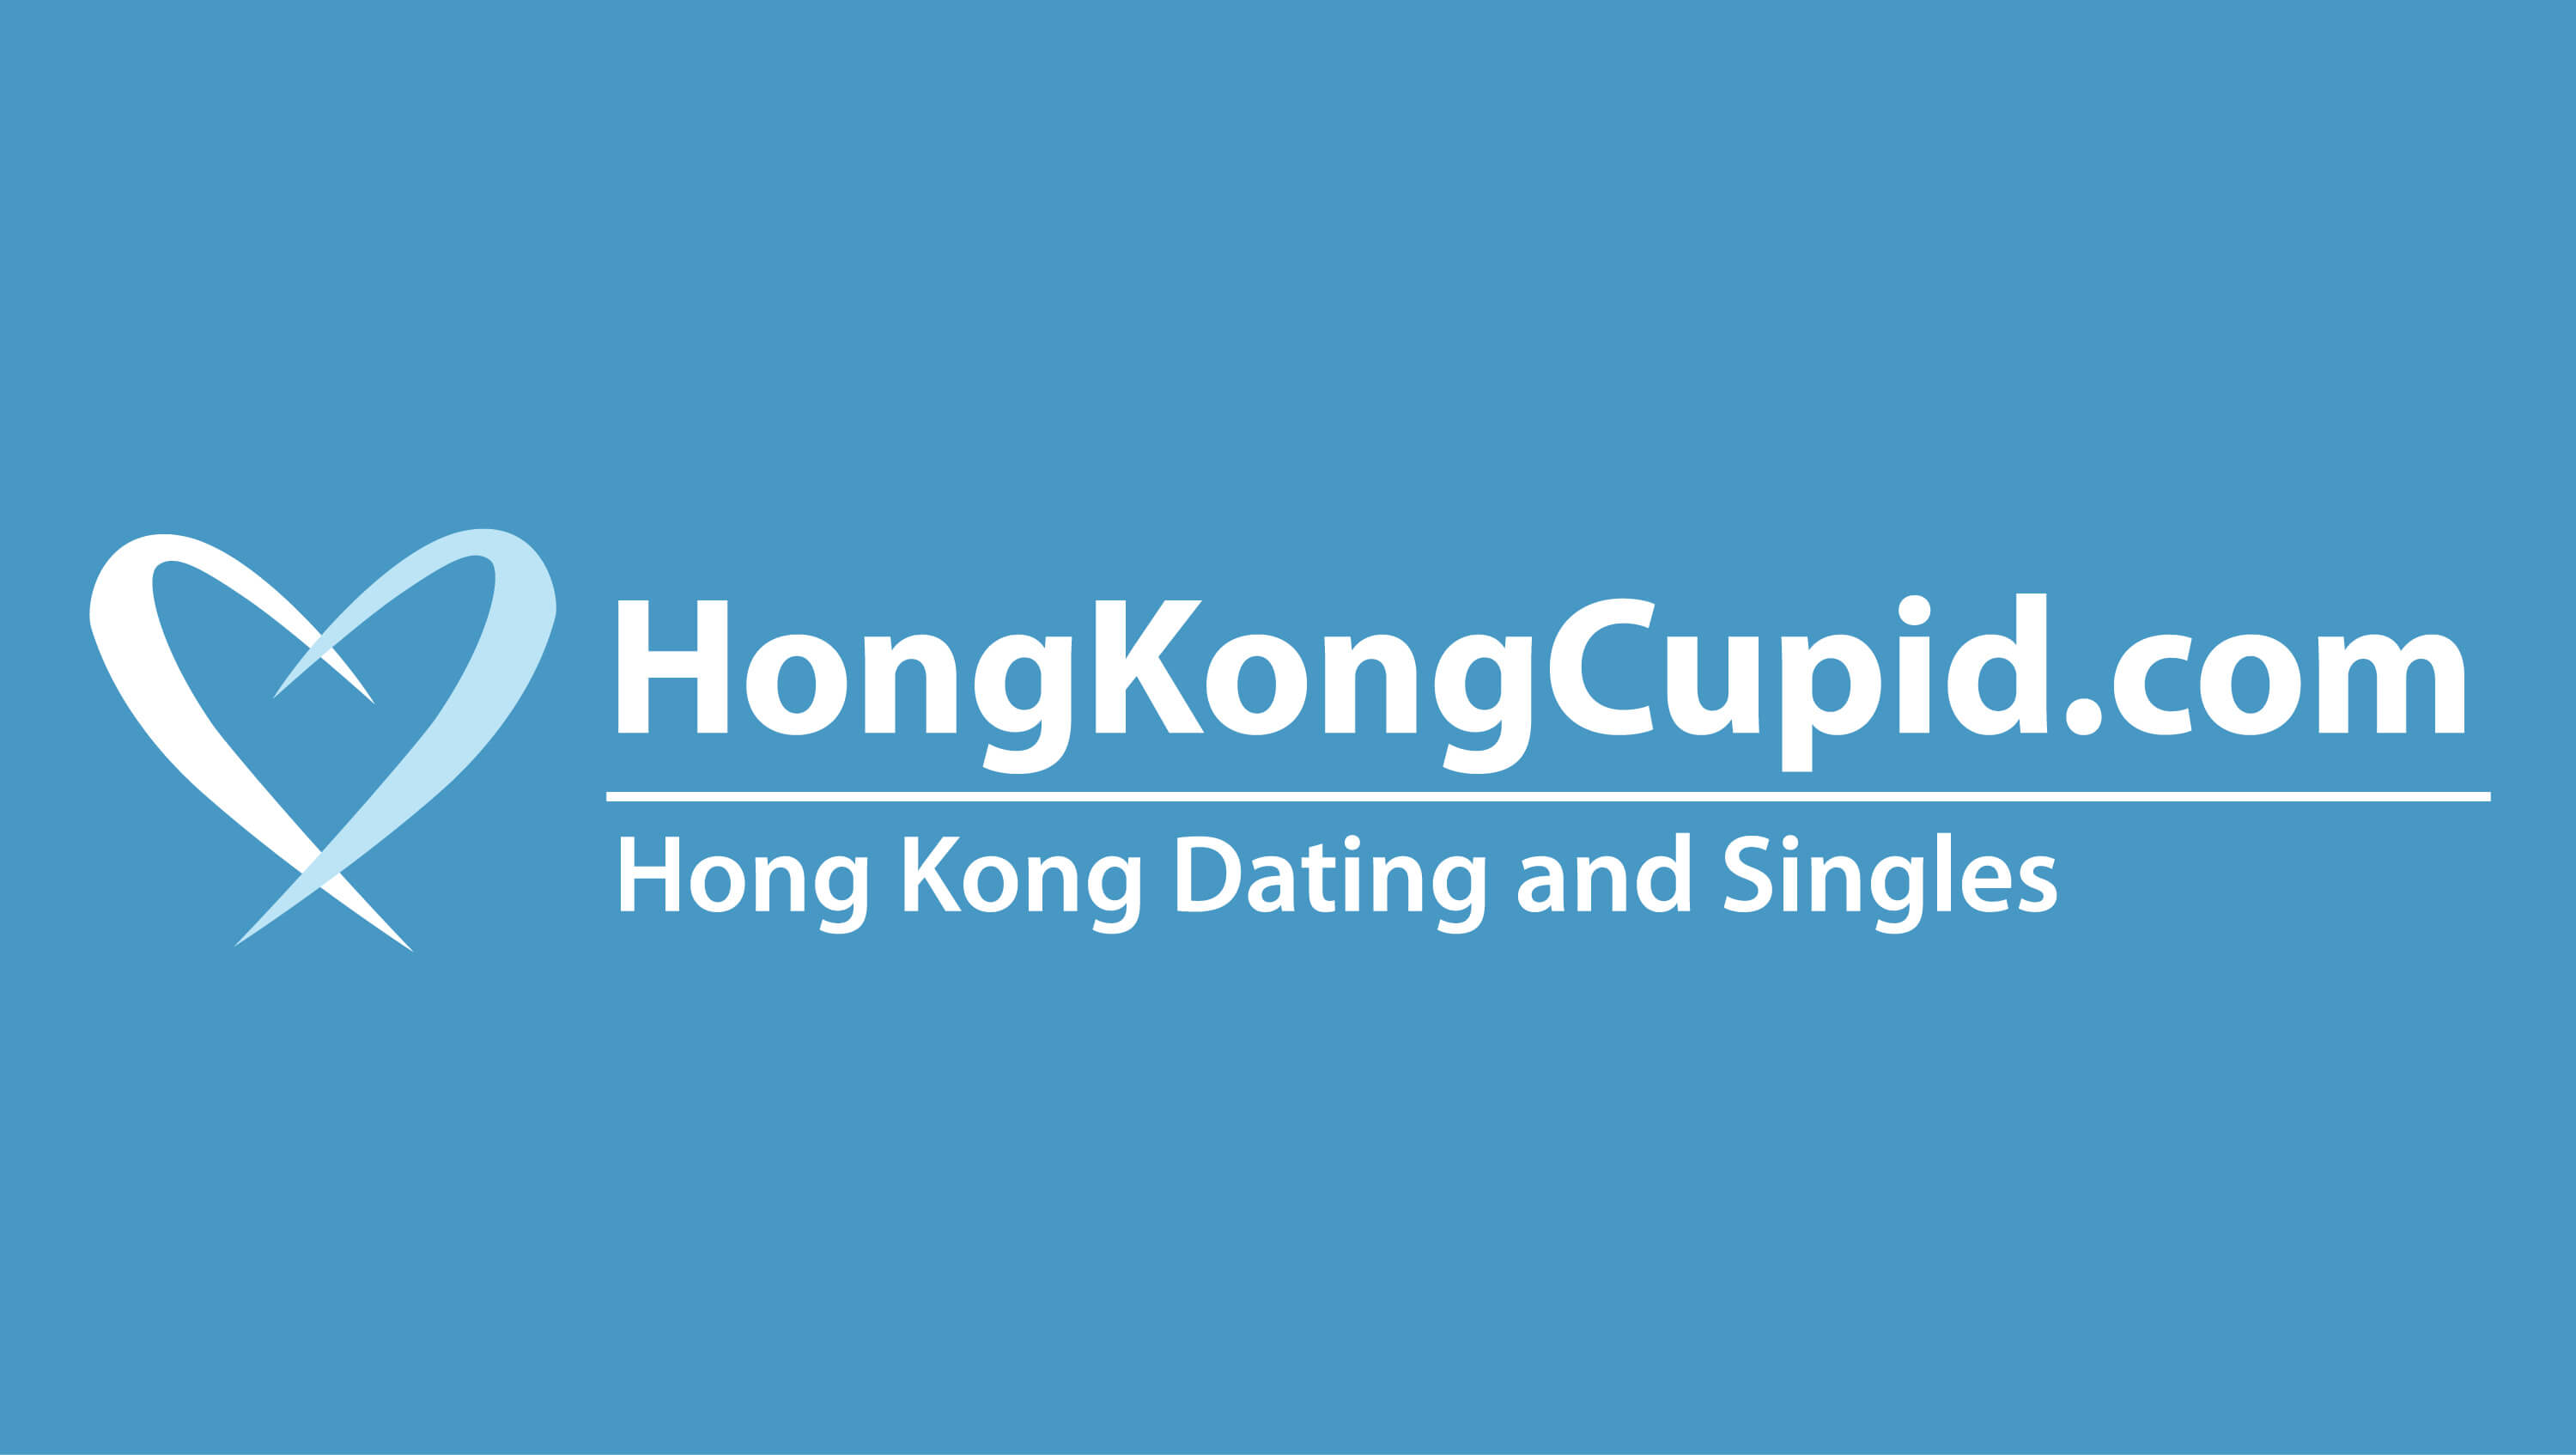 Hong Kong Cupid Logo